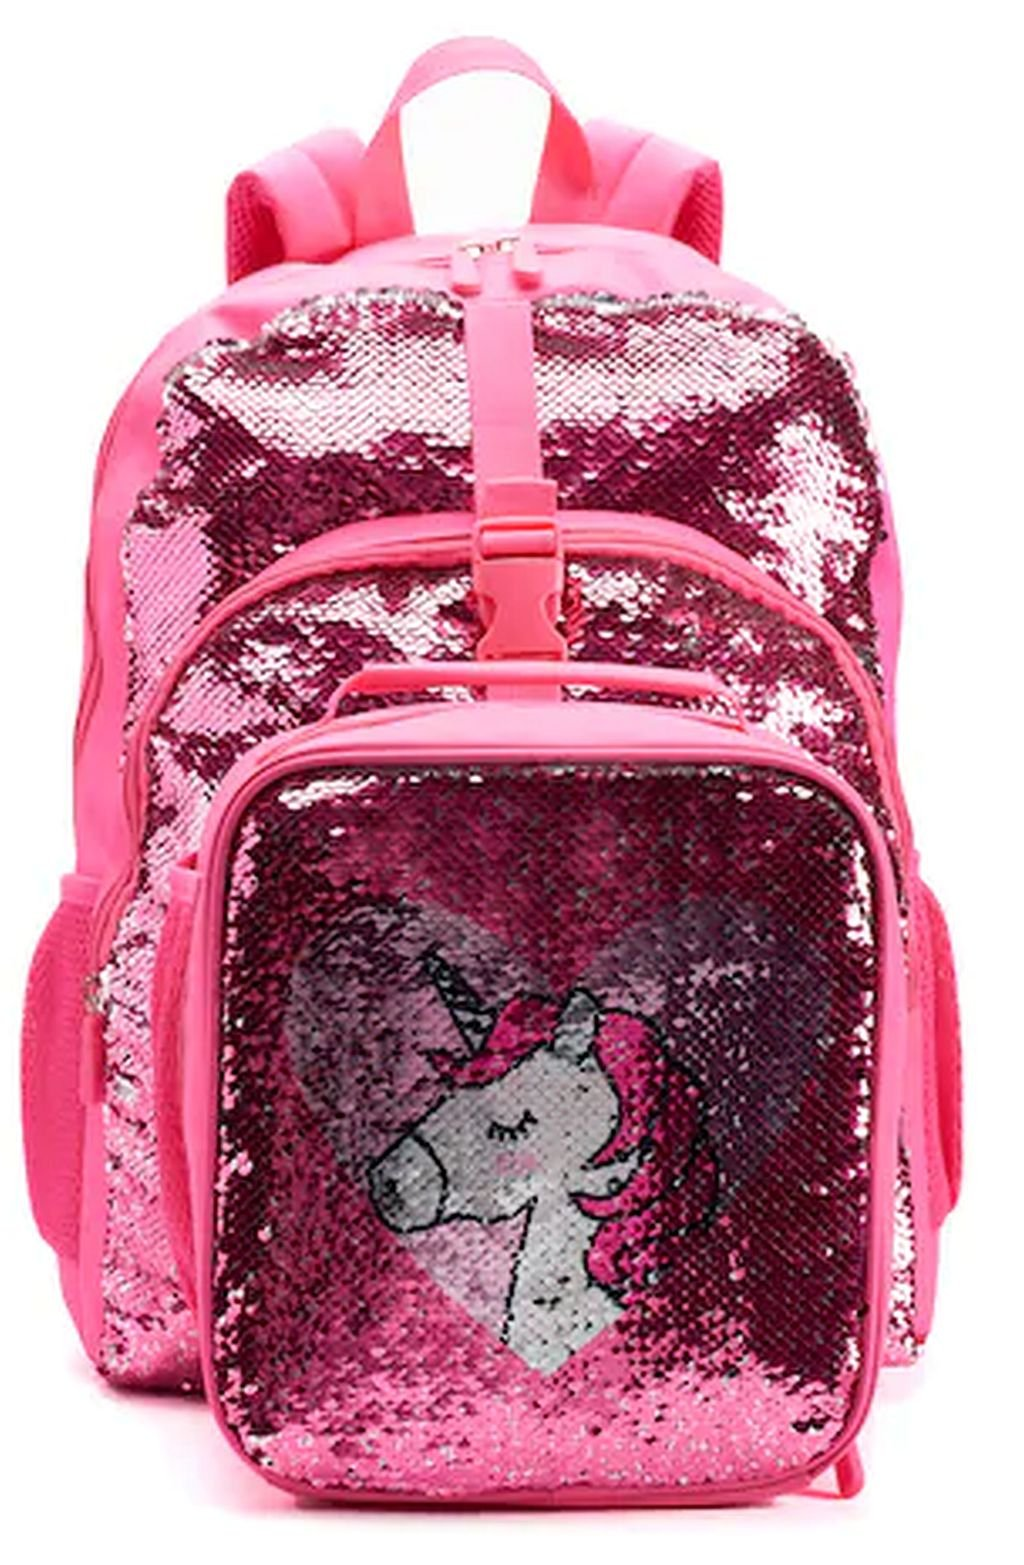 Kids Flippable Sequins''I Love Unicorns'' Backpack & Lunch Bag Set by A22 (Image #1)